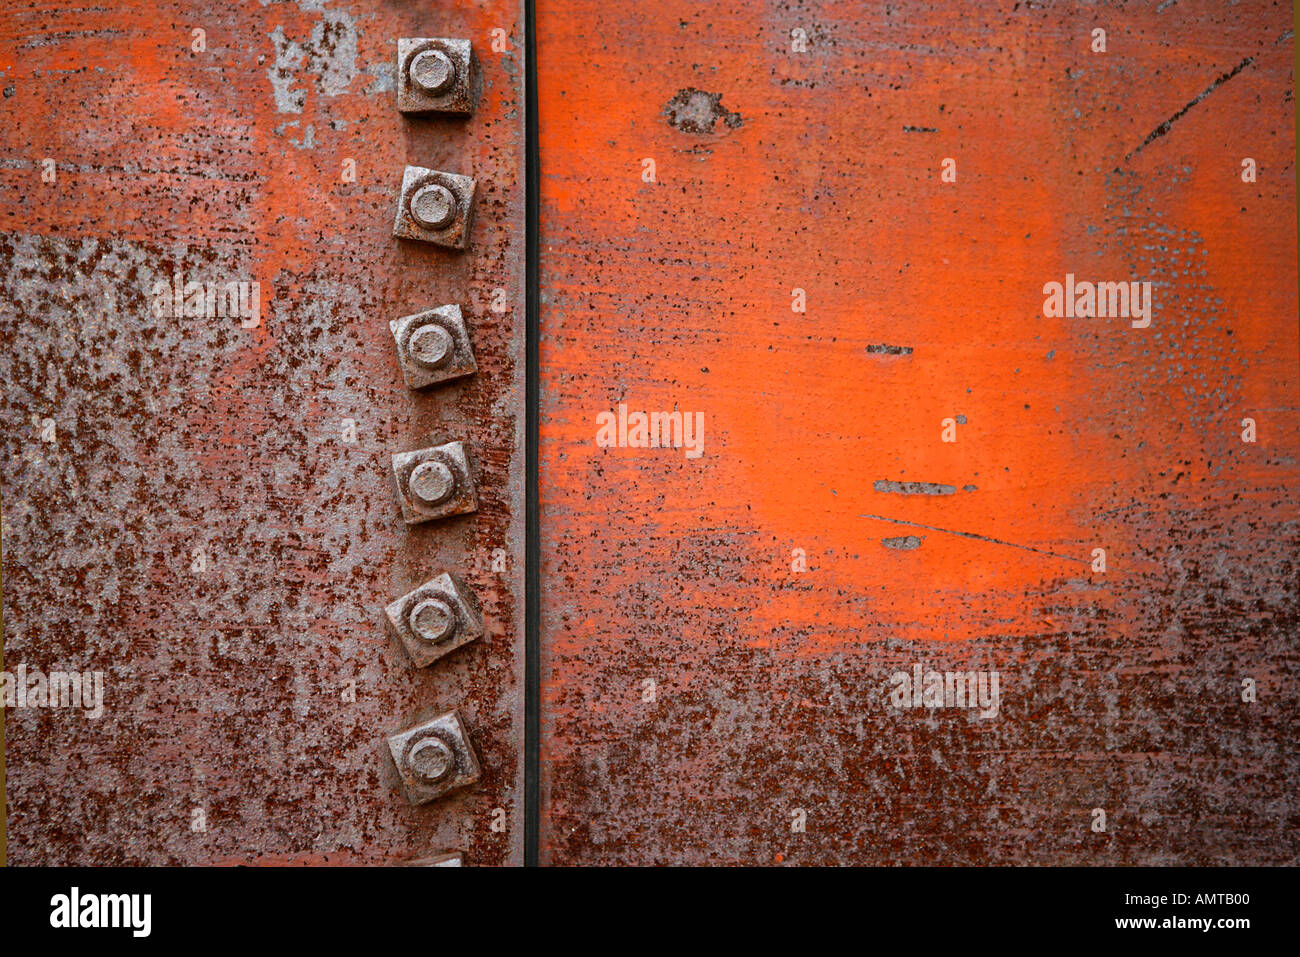 A close up of a seam on an old water tank showing the rust and fastening nuts Stock Photo